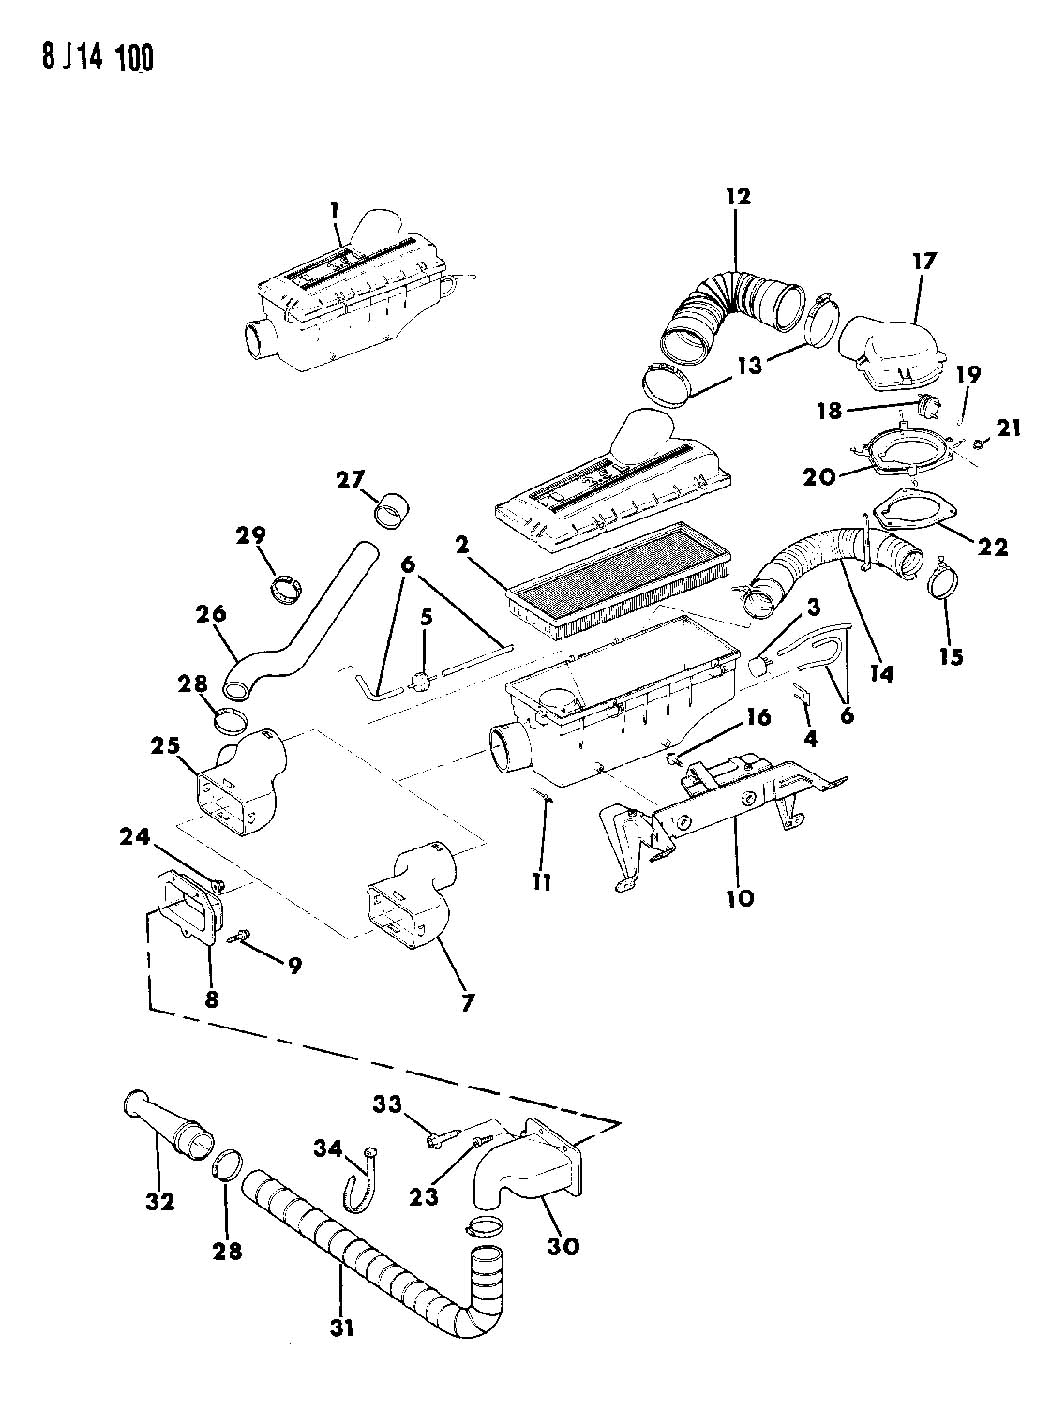 1988 Jeep Wrangler Engine Diagram Great Design Of Wiring Carburetor Dodge Ram 50 Parts Imageresizertool Com Specs 1998 And